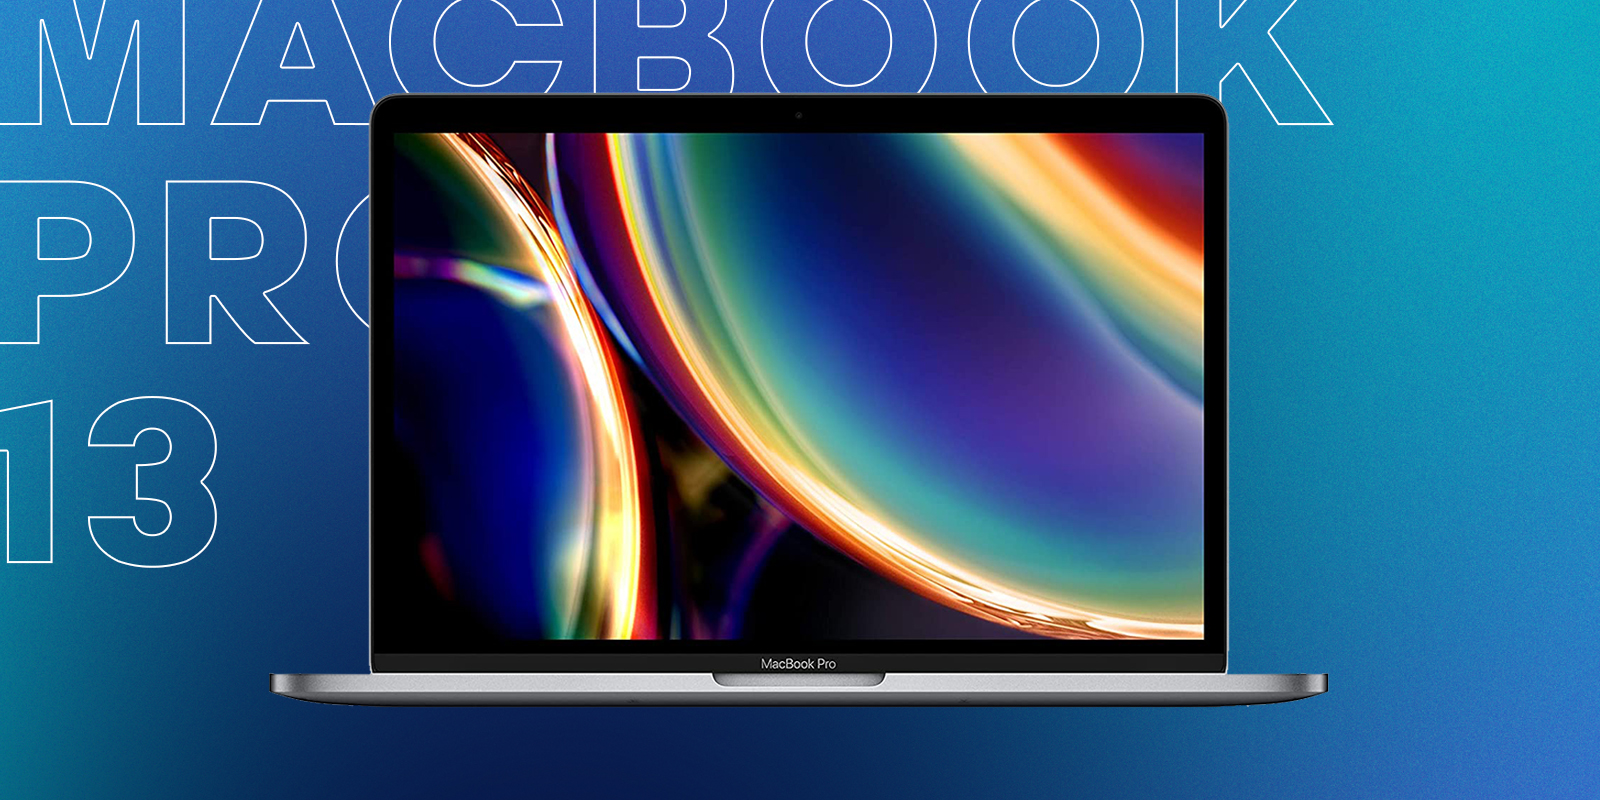 Apple MacBook Pro 13 Best Overall Laptop For Graphic Design